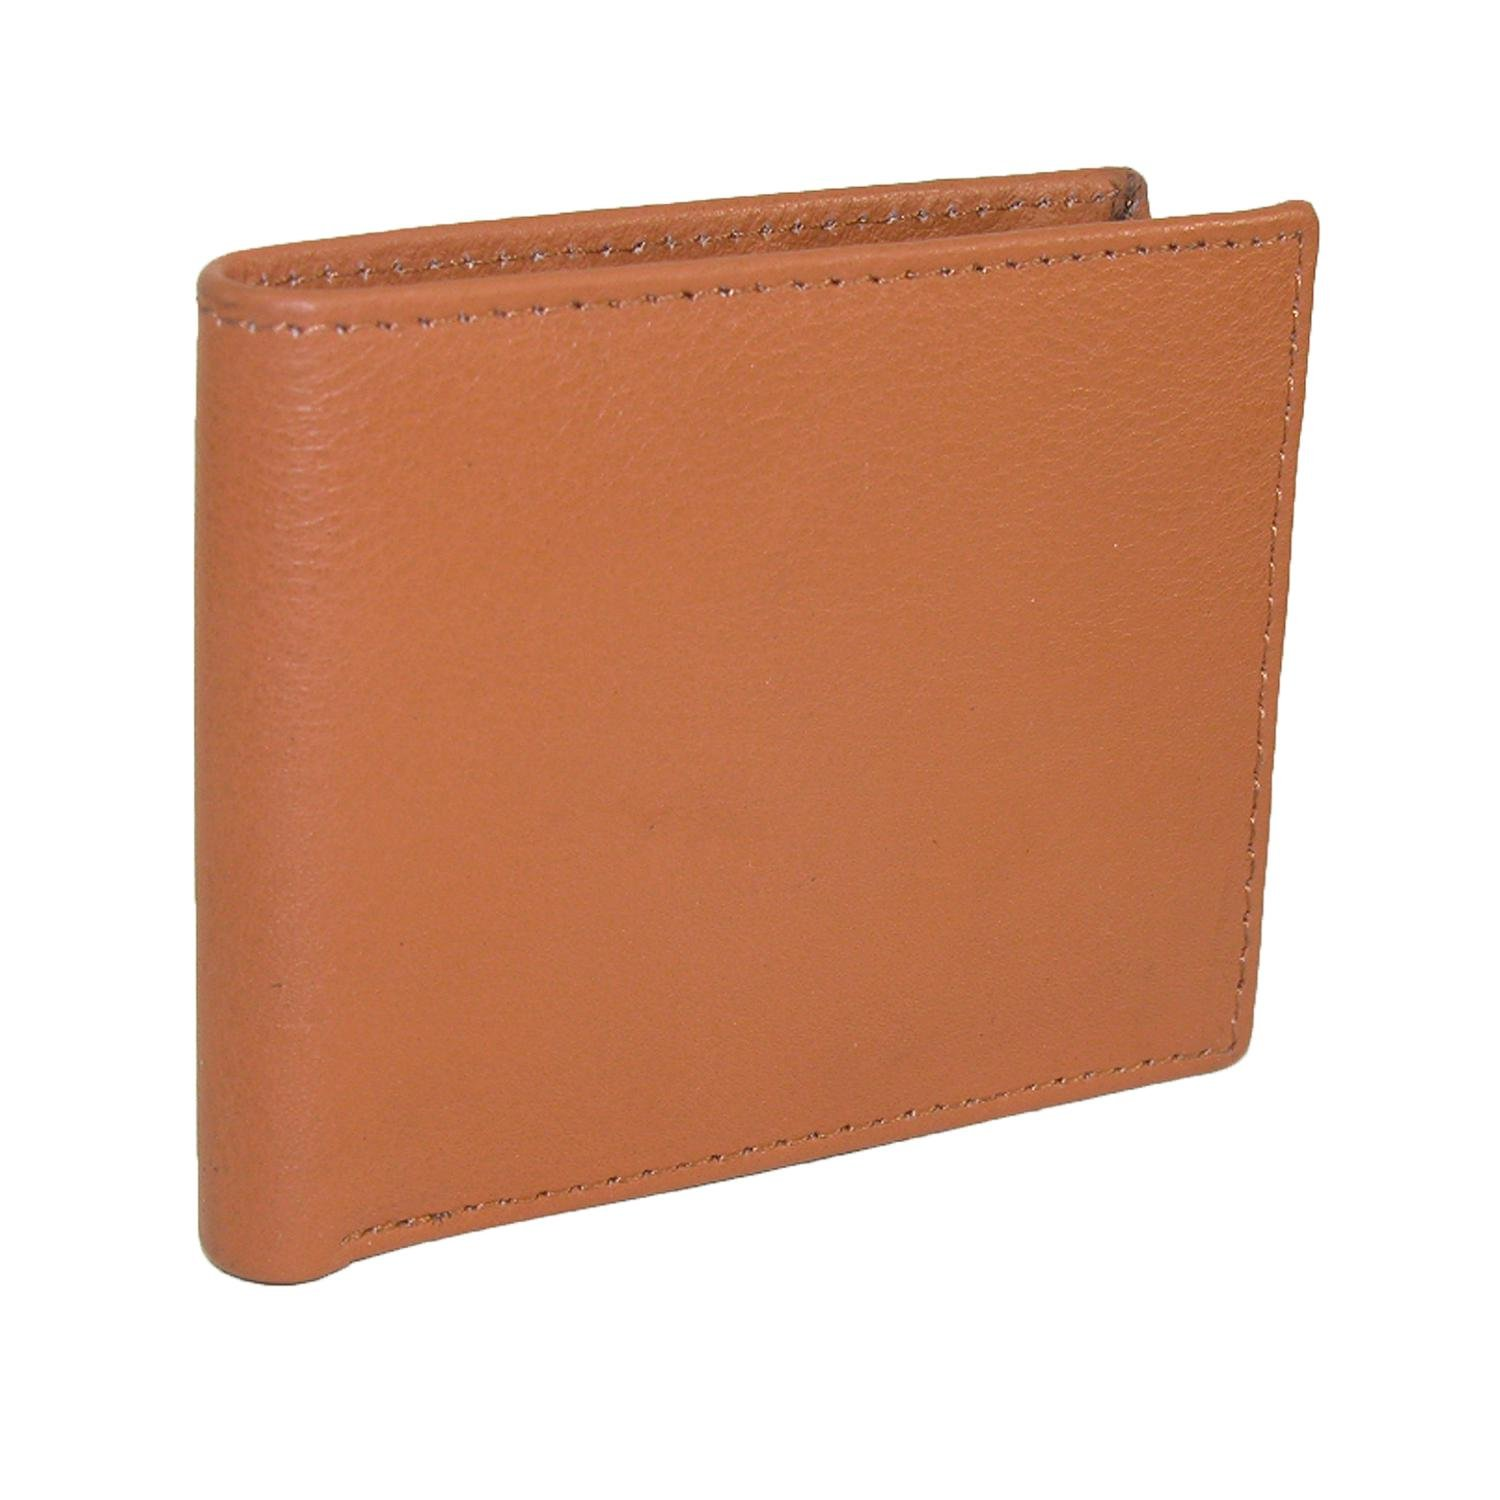 CTM Mens Leather RFID Protected Bilfold Wallet with Flip Up Passcase Brown CL-51402-BRN